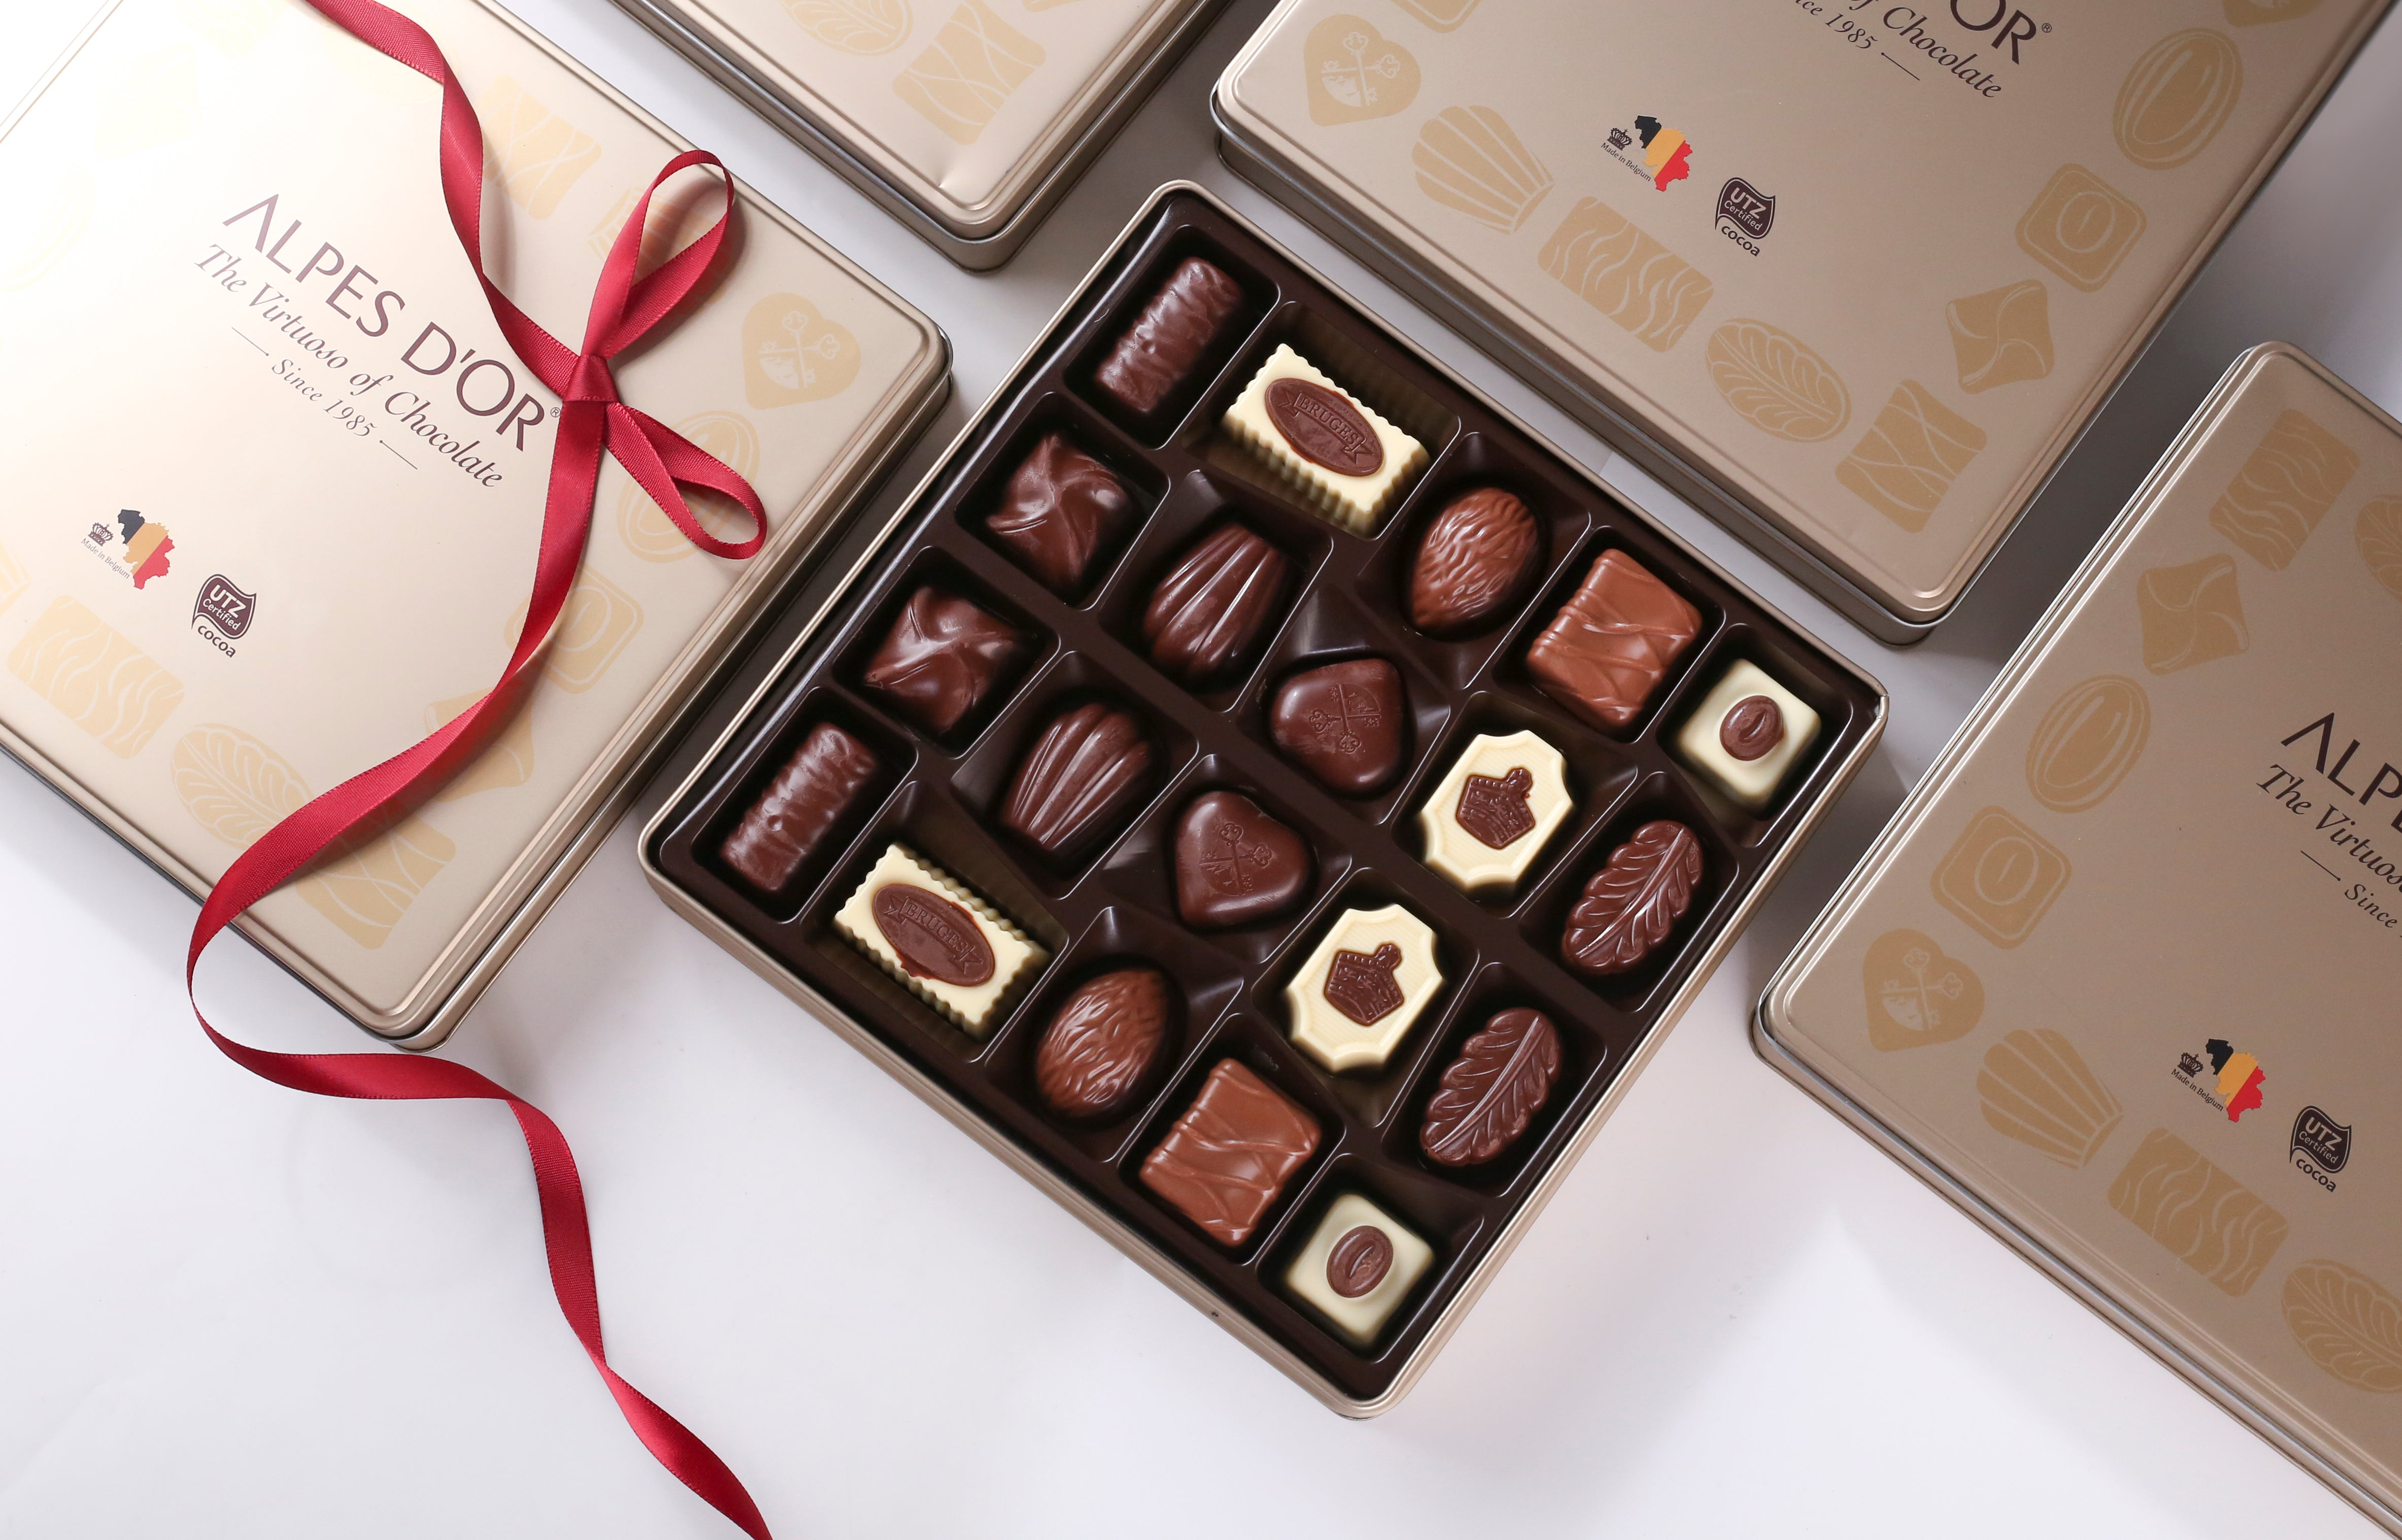 Alpes d'Or 20 piece luxury (gold) Belgian Chocolate selection